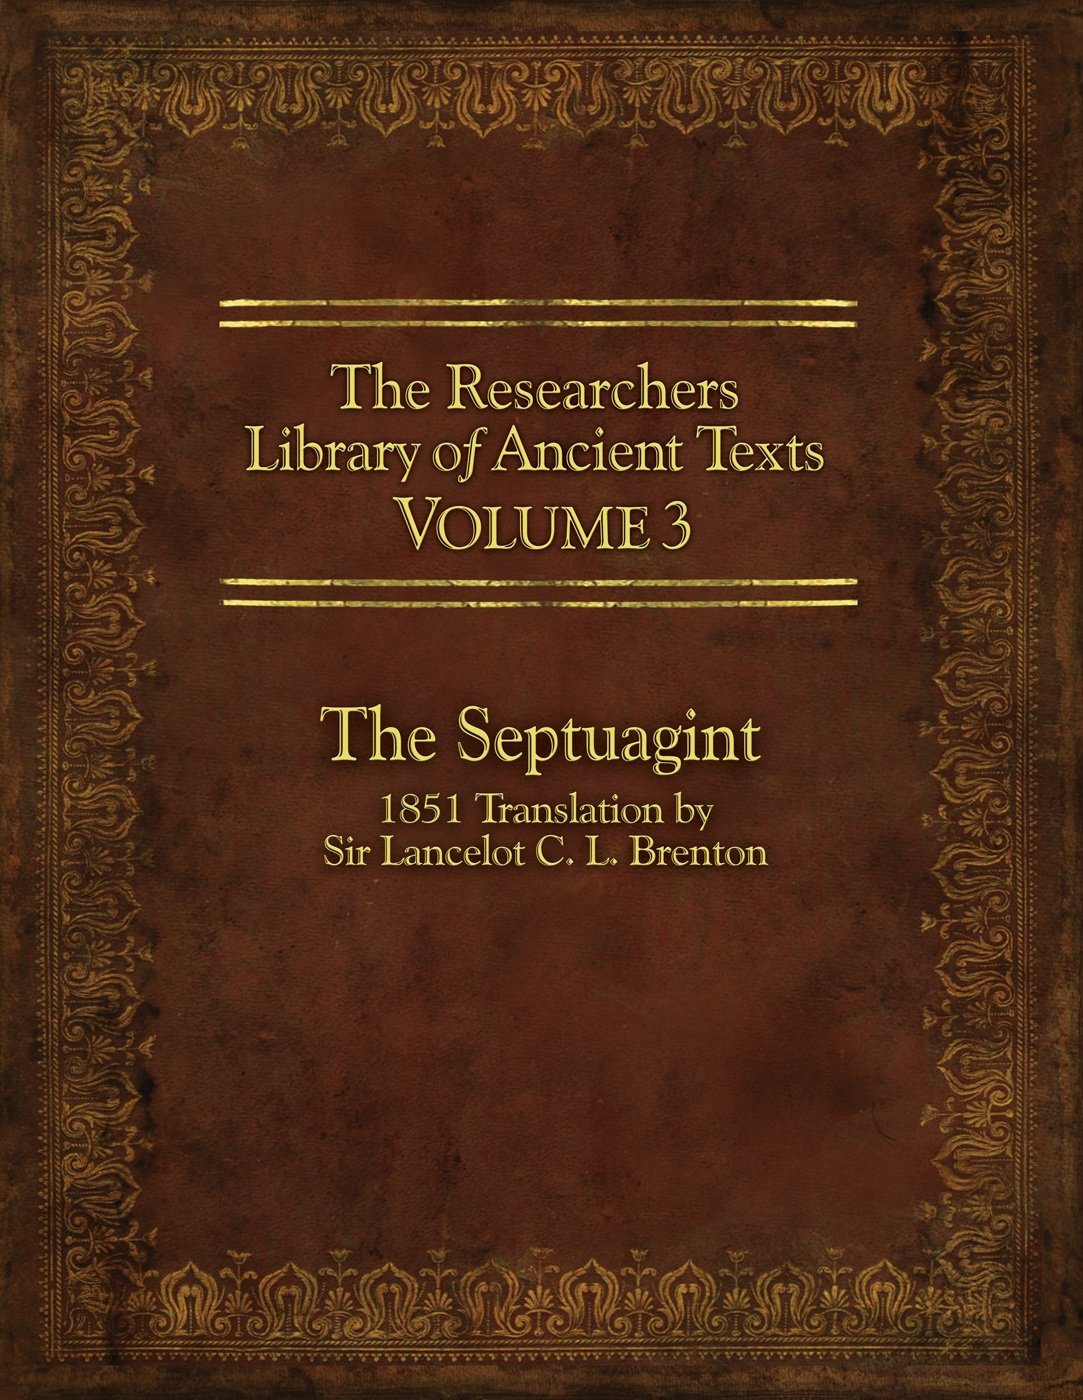 Download The Researcher's Library of Ancient Texts - Volume III: The Septuagint: Translation by Sir Lancelot C. L. Brenton 1851 PDF